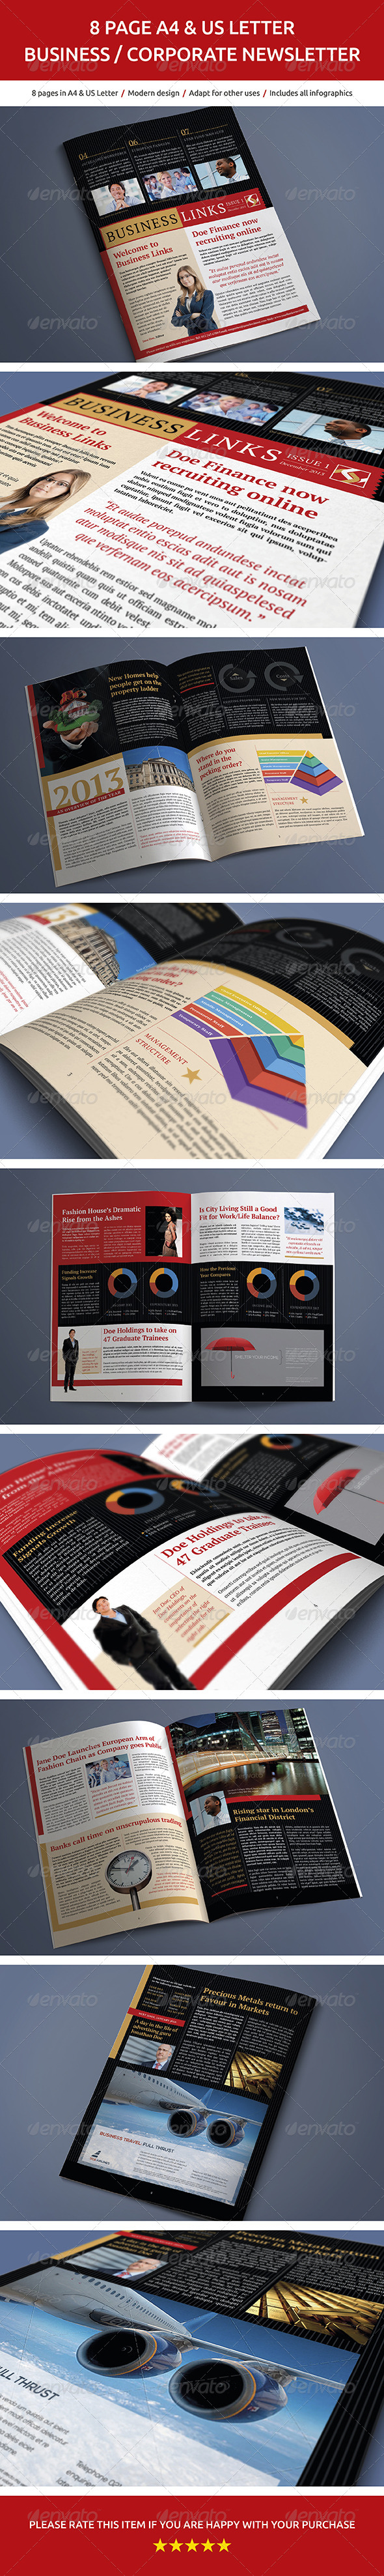 8 Page Business and Corporate Newsletter No.2 - Newsletters Print Templates